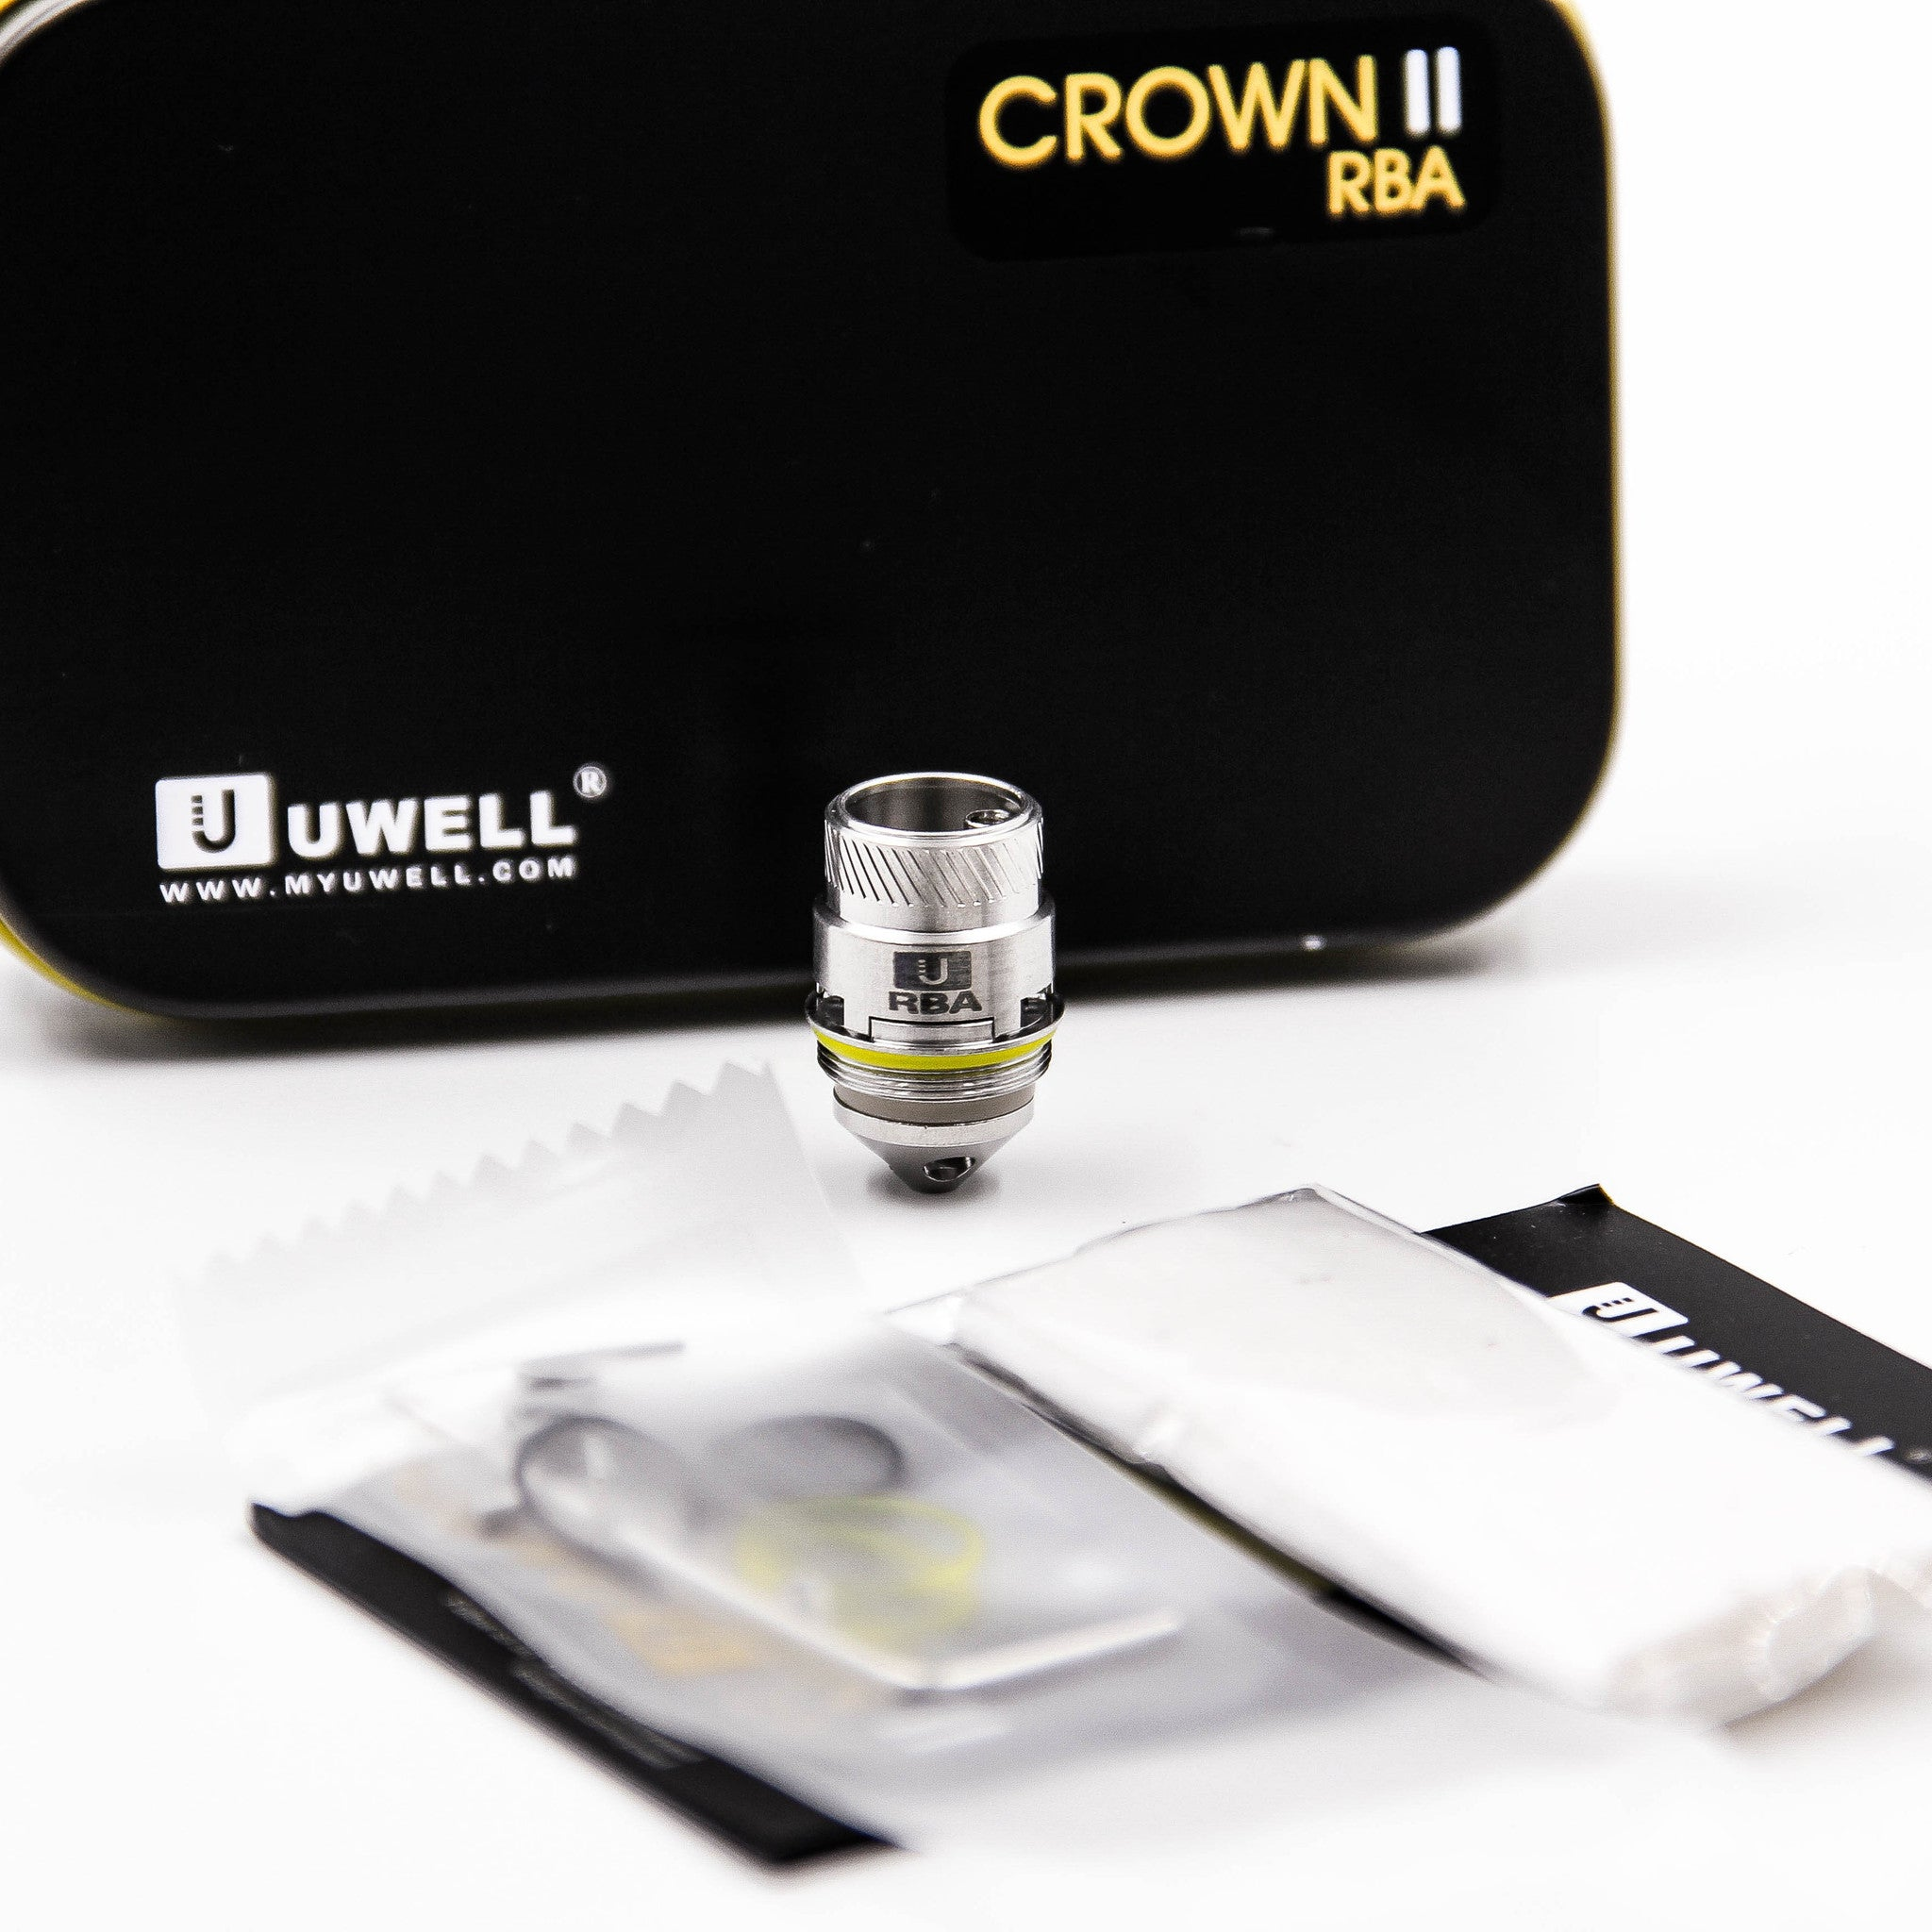 Crown II RBA